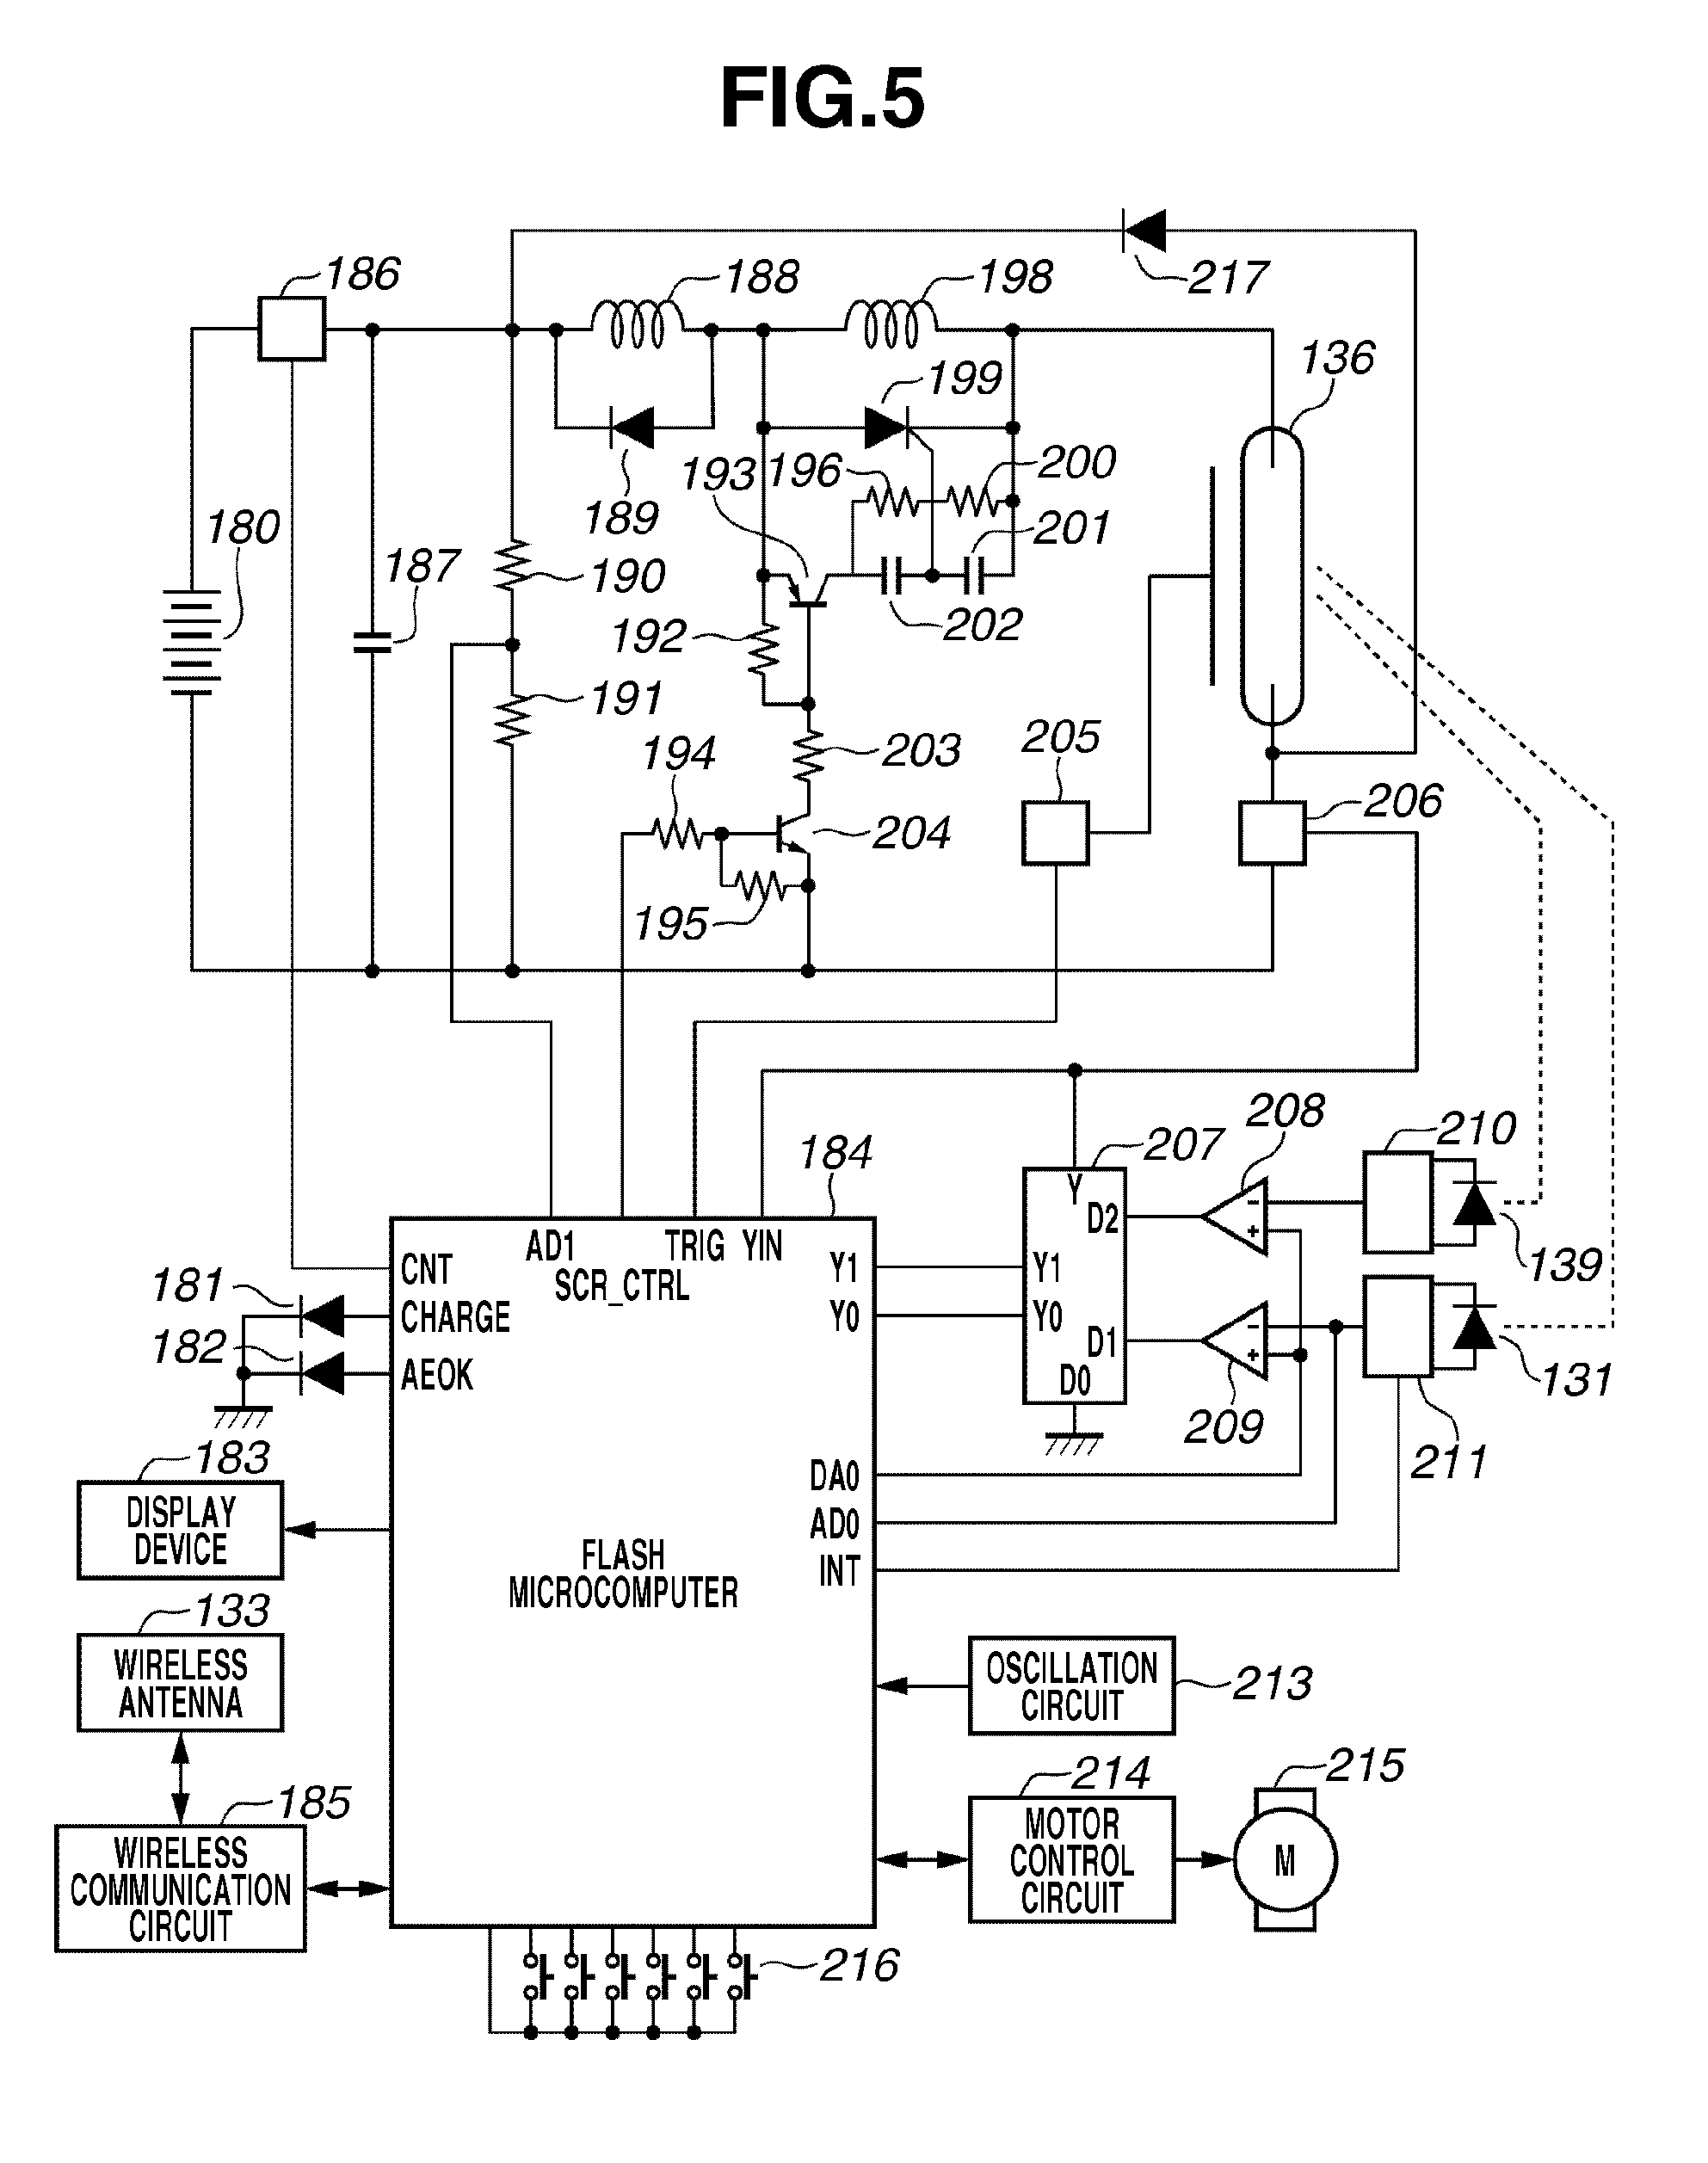 us20100202767a1 imaging apparatus flash device and control DC Motor Control Circuit Schematic us20100202767a1 imaging apparatus flash device and control method thereof patents